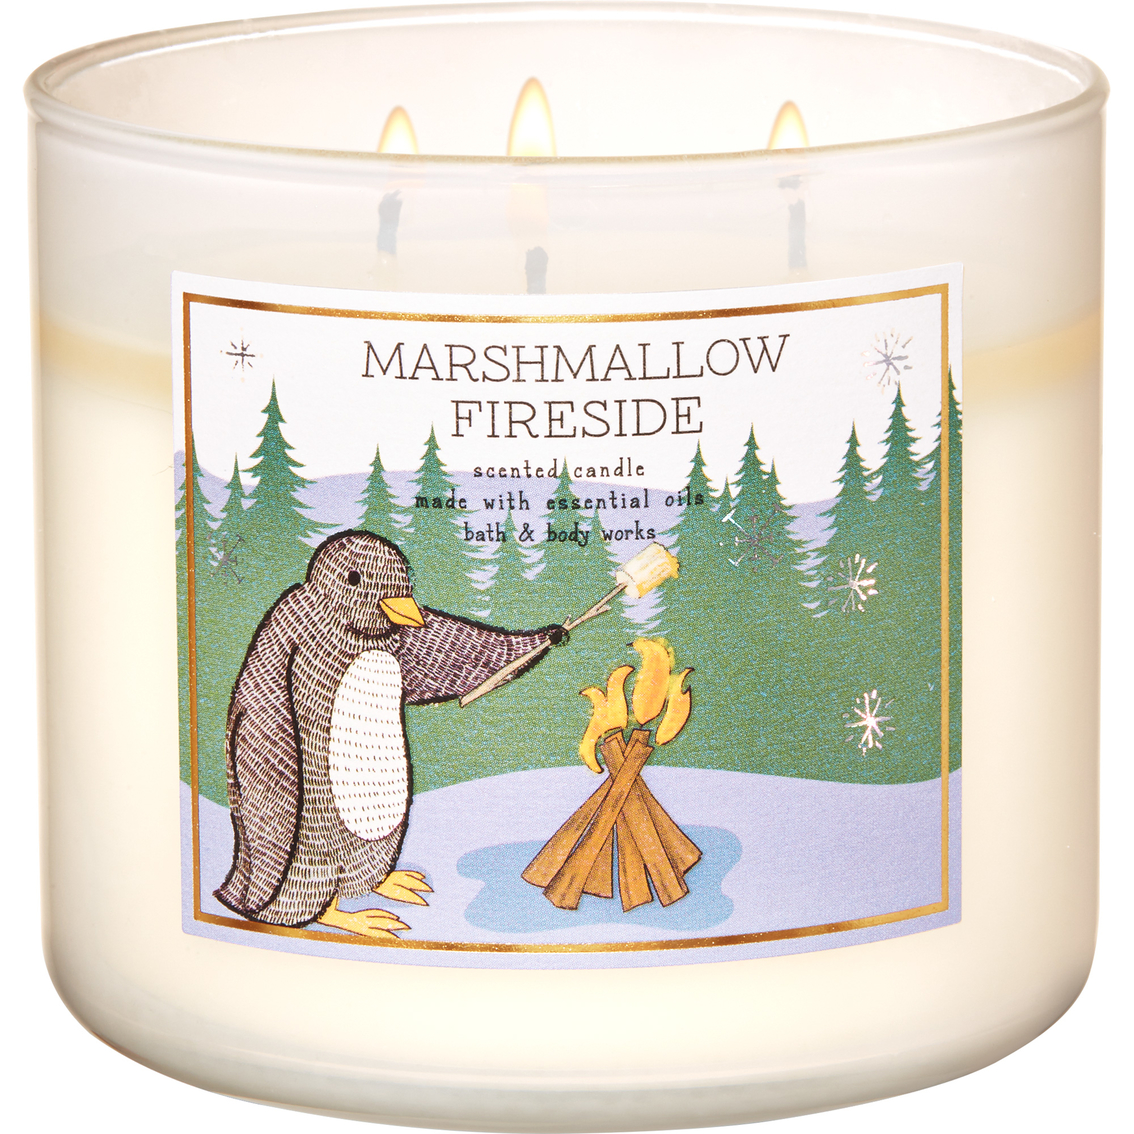 Bath /& Body Works 3-Wick Candle in Marshmallow Fireside